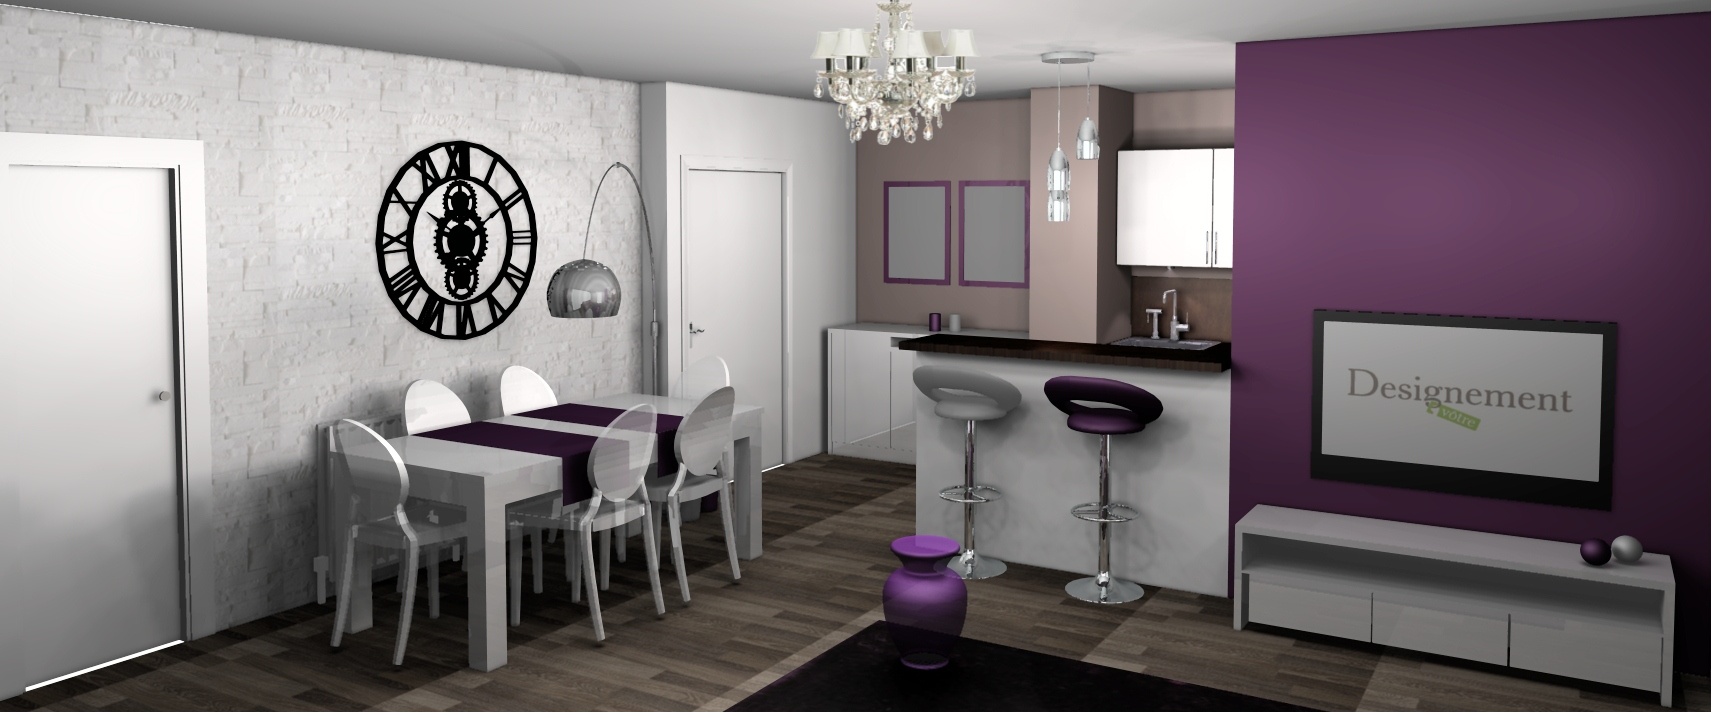 Mod le id e d co salle manger prune for Deco salon violet et gris